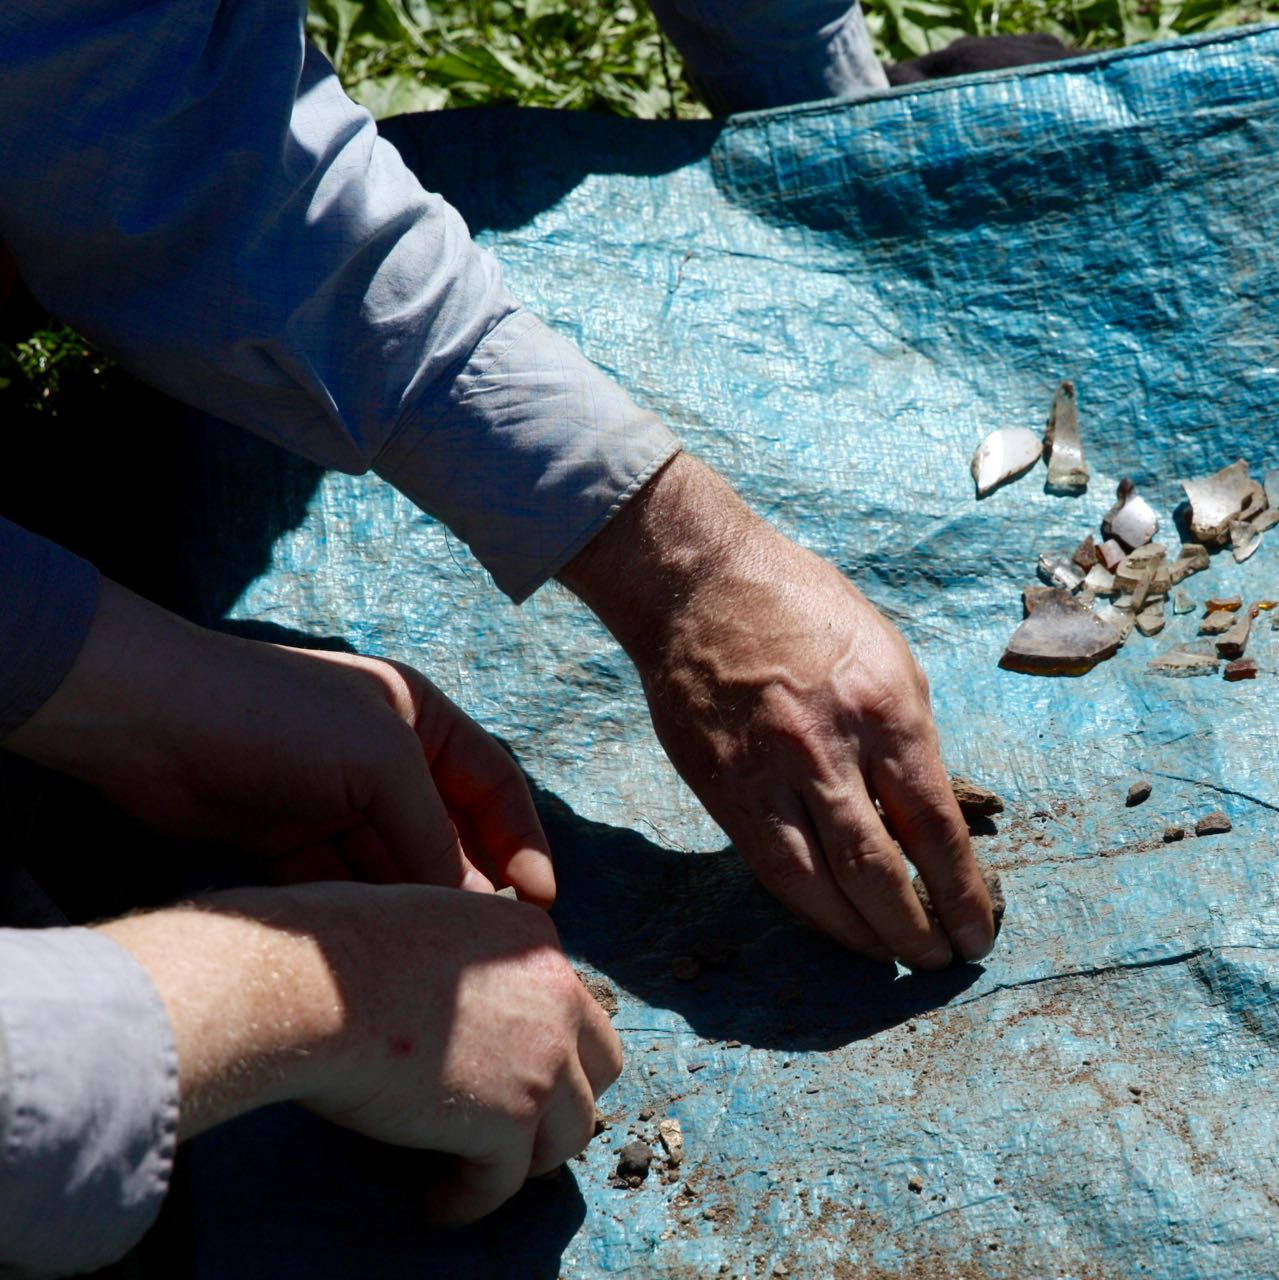 A volunteer separates shards of pottery uncovered during the dig.